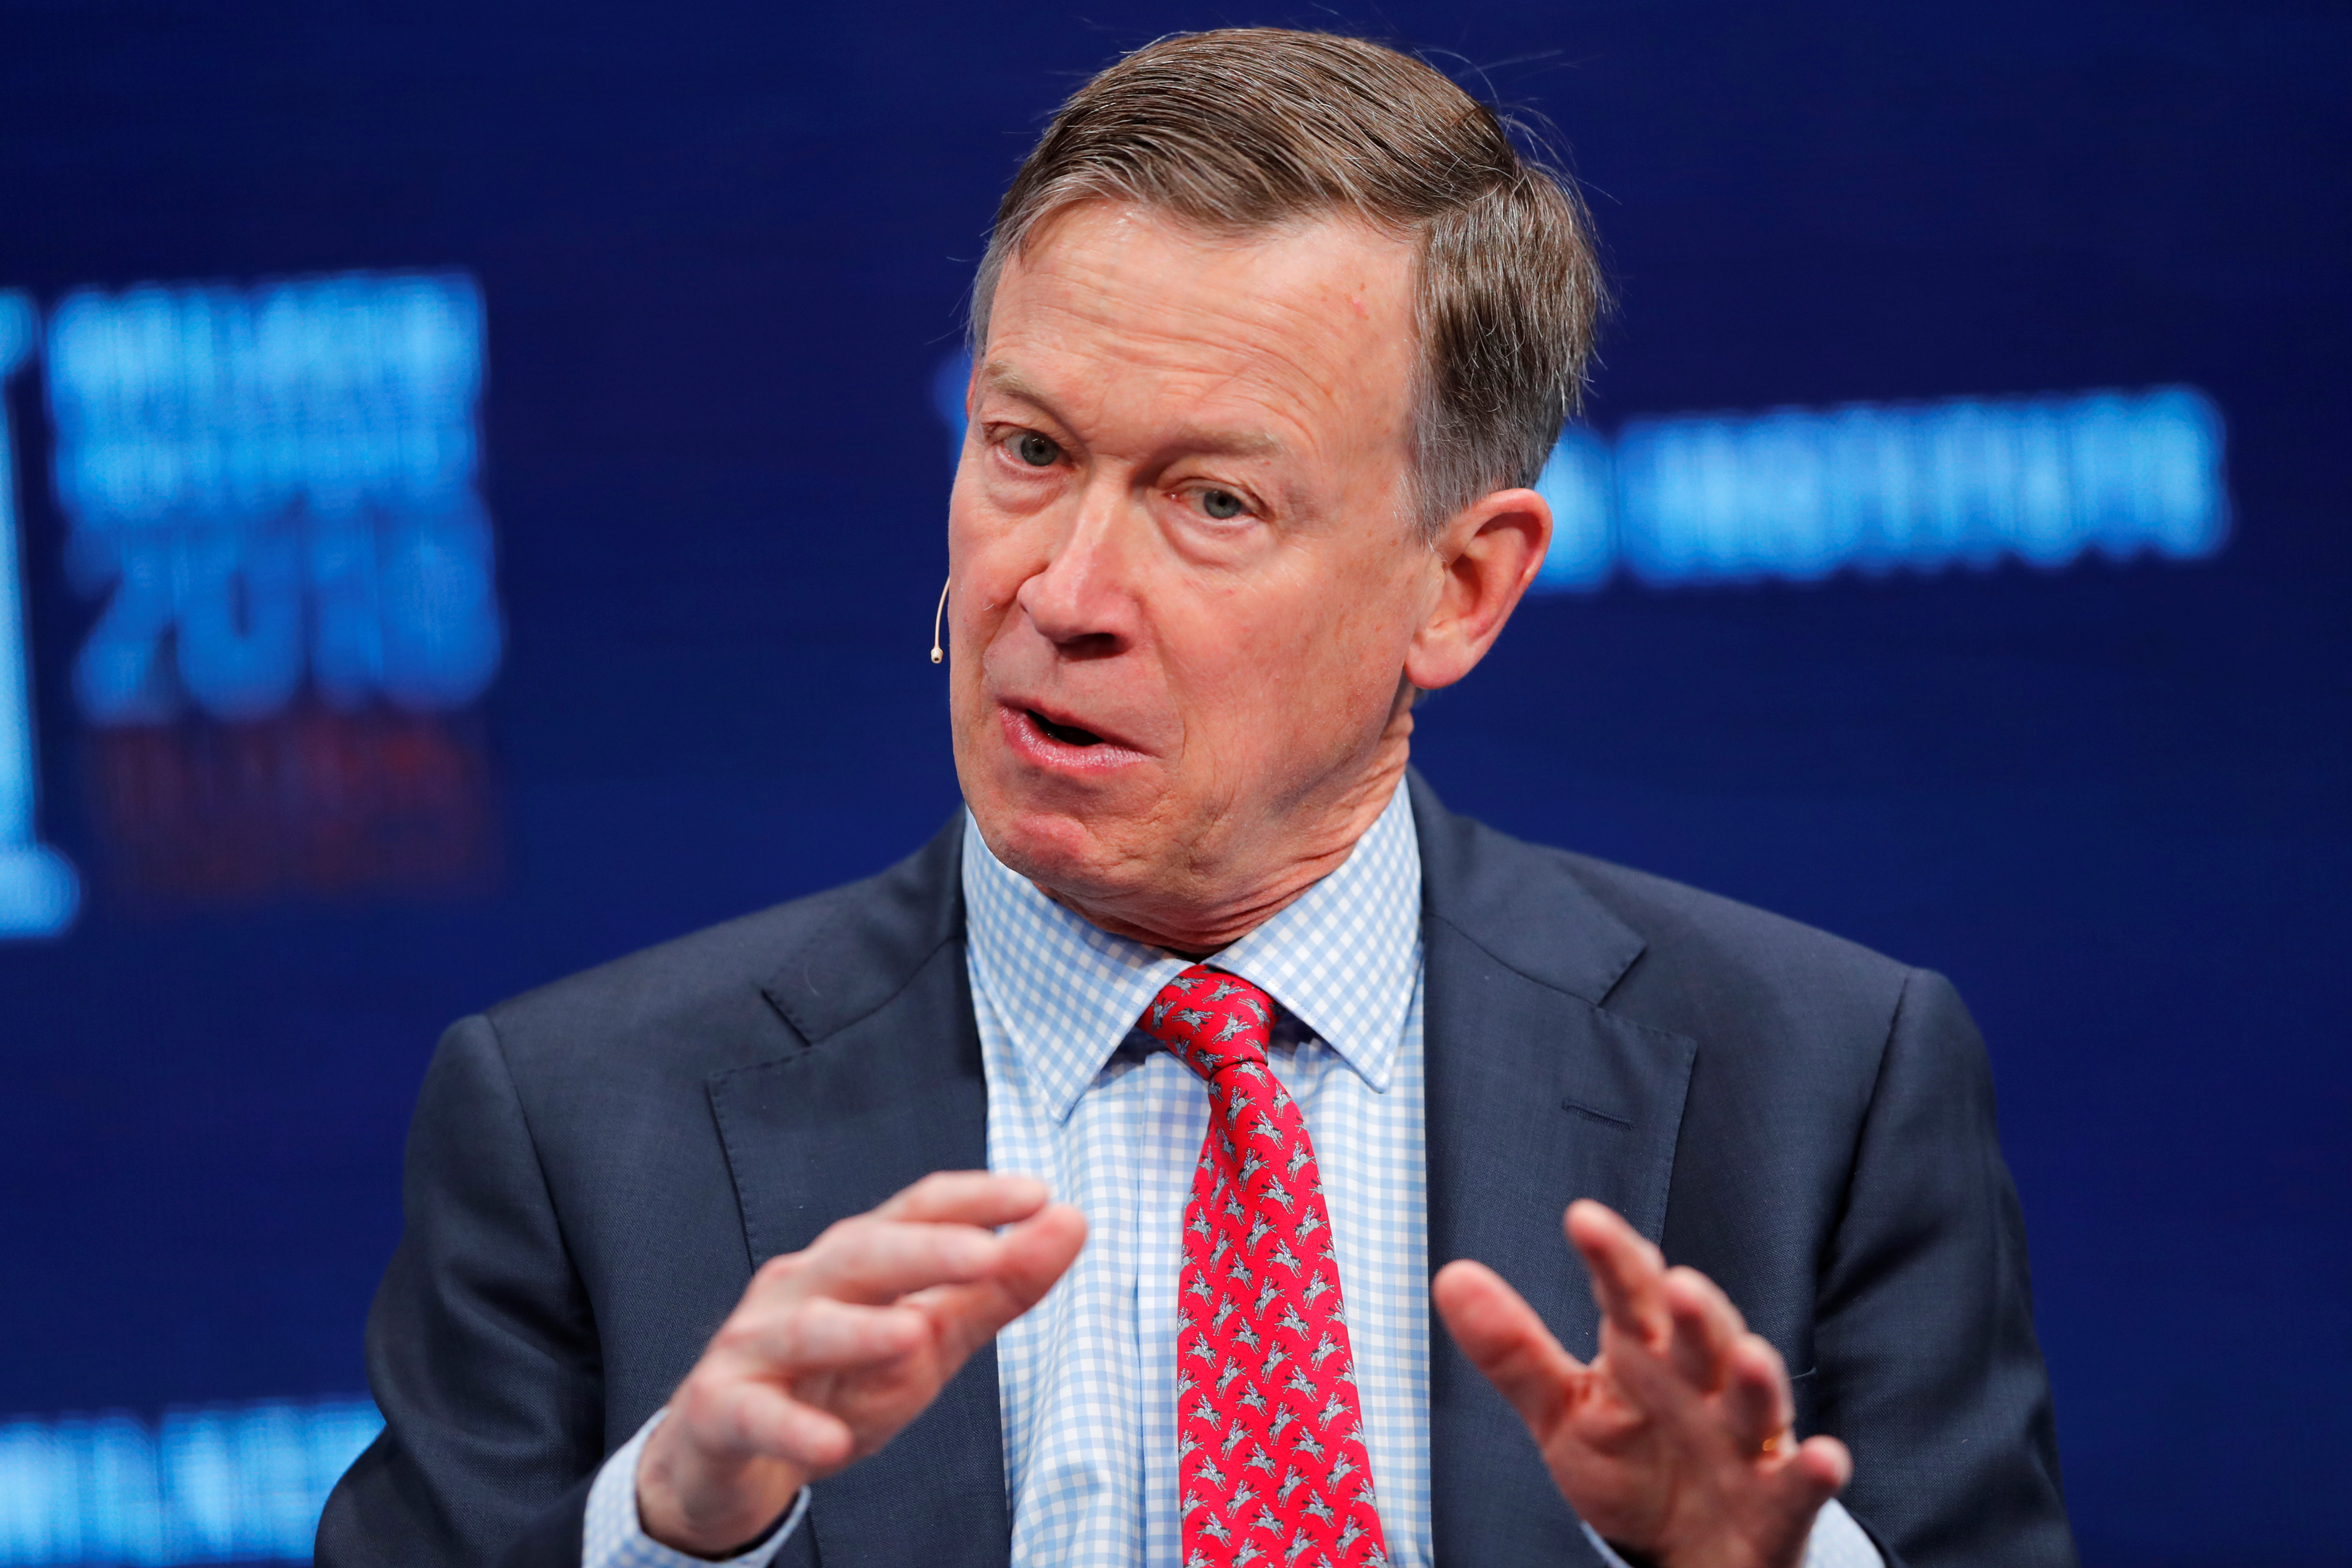 John Hickenlooper Governor, Colorado speaks at the Milken Institute 21st Global Conference in Beverly Hills, California